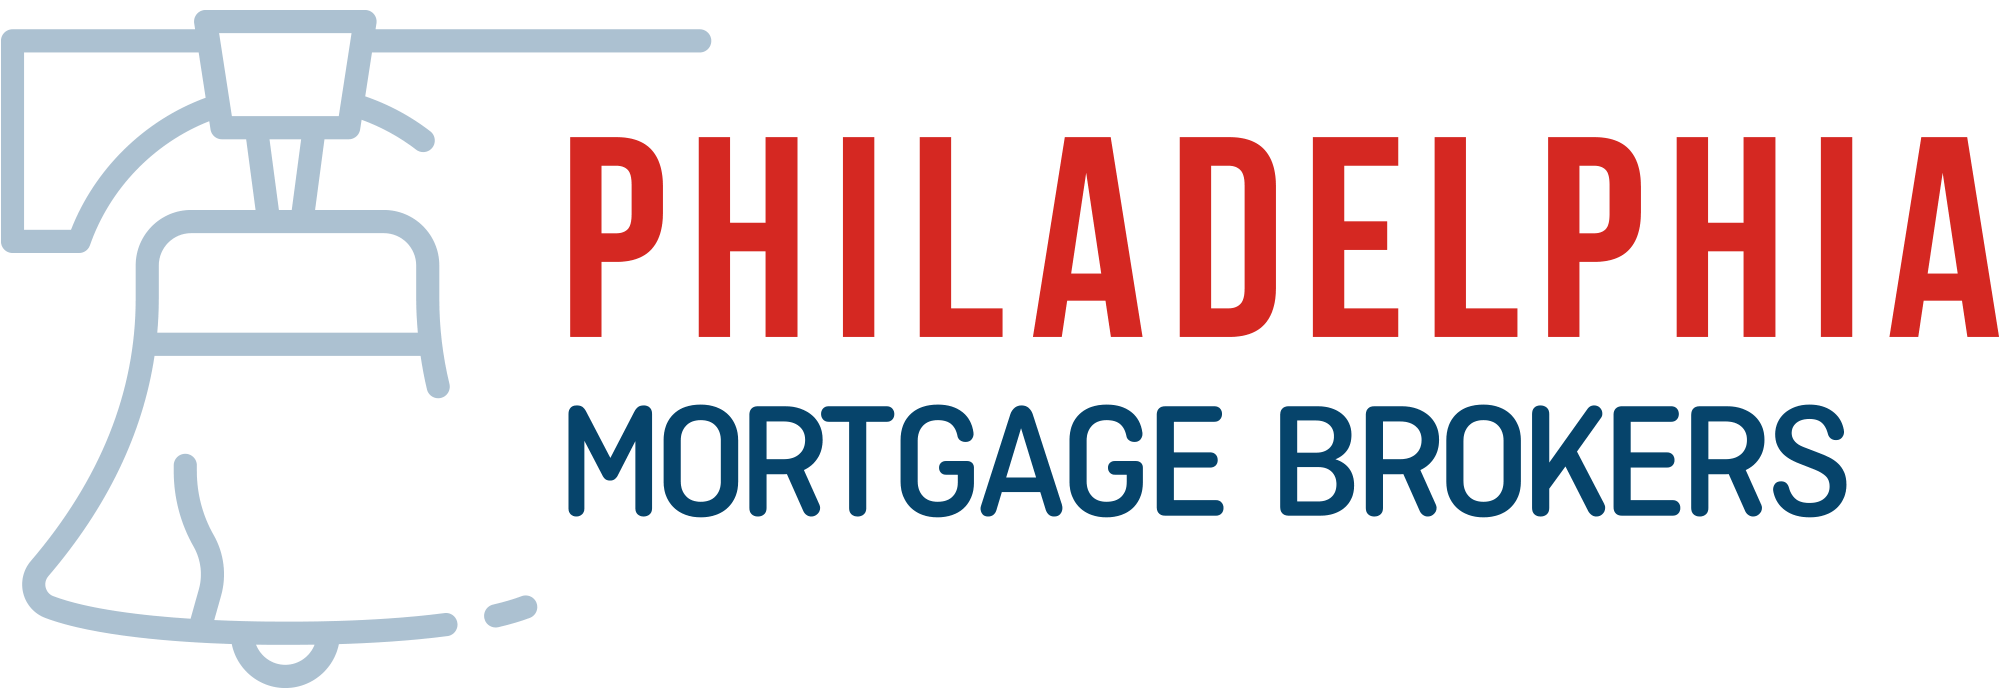 Philadelphia Mortgage Brokers Refinance | Get Low Mortgage Rates